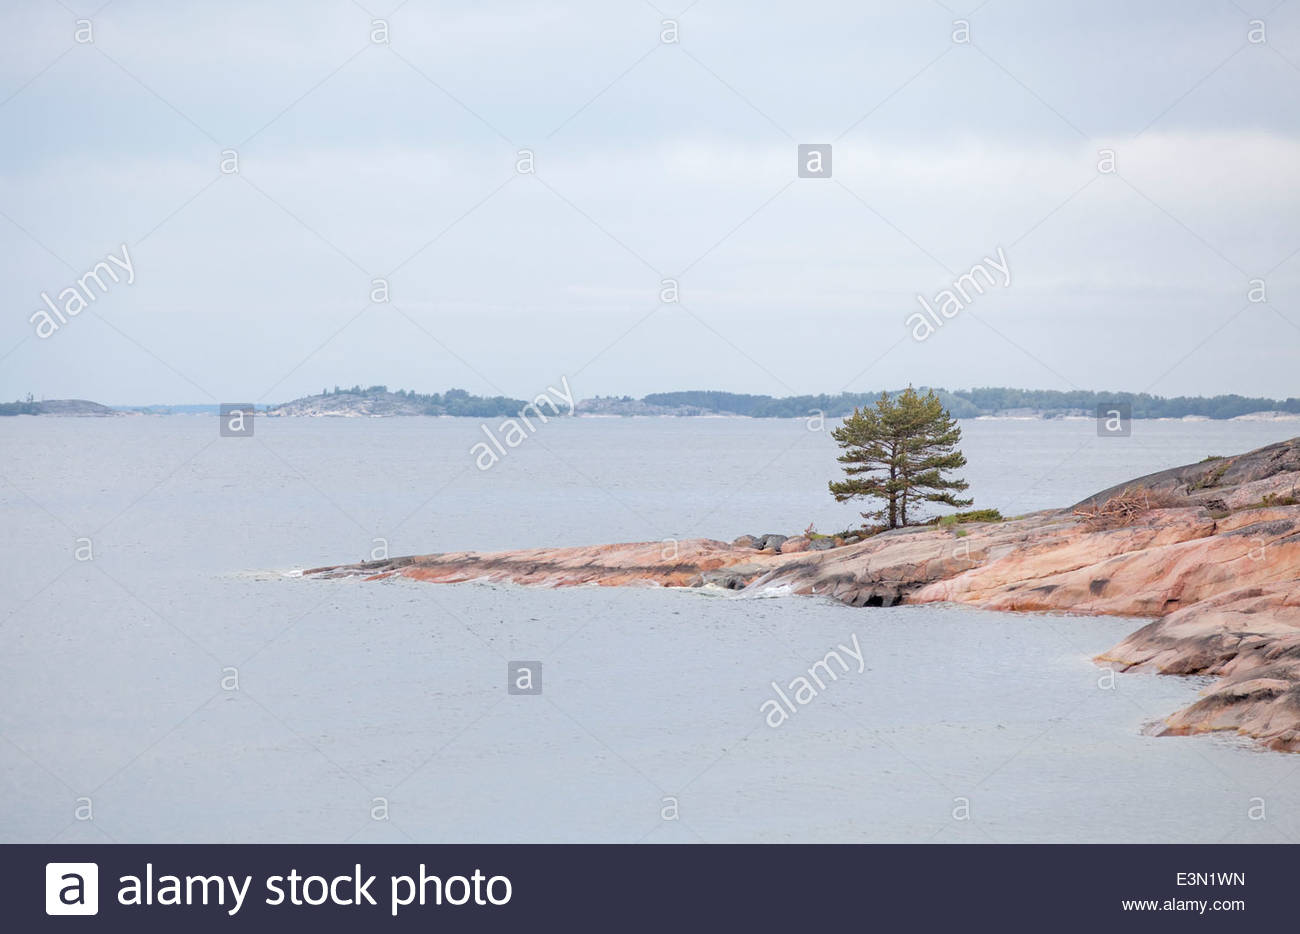 A lone pine tree by the sea - Stock Image